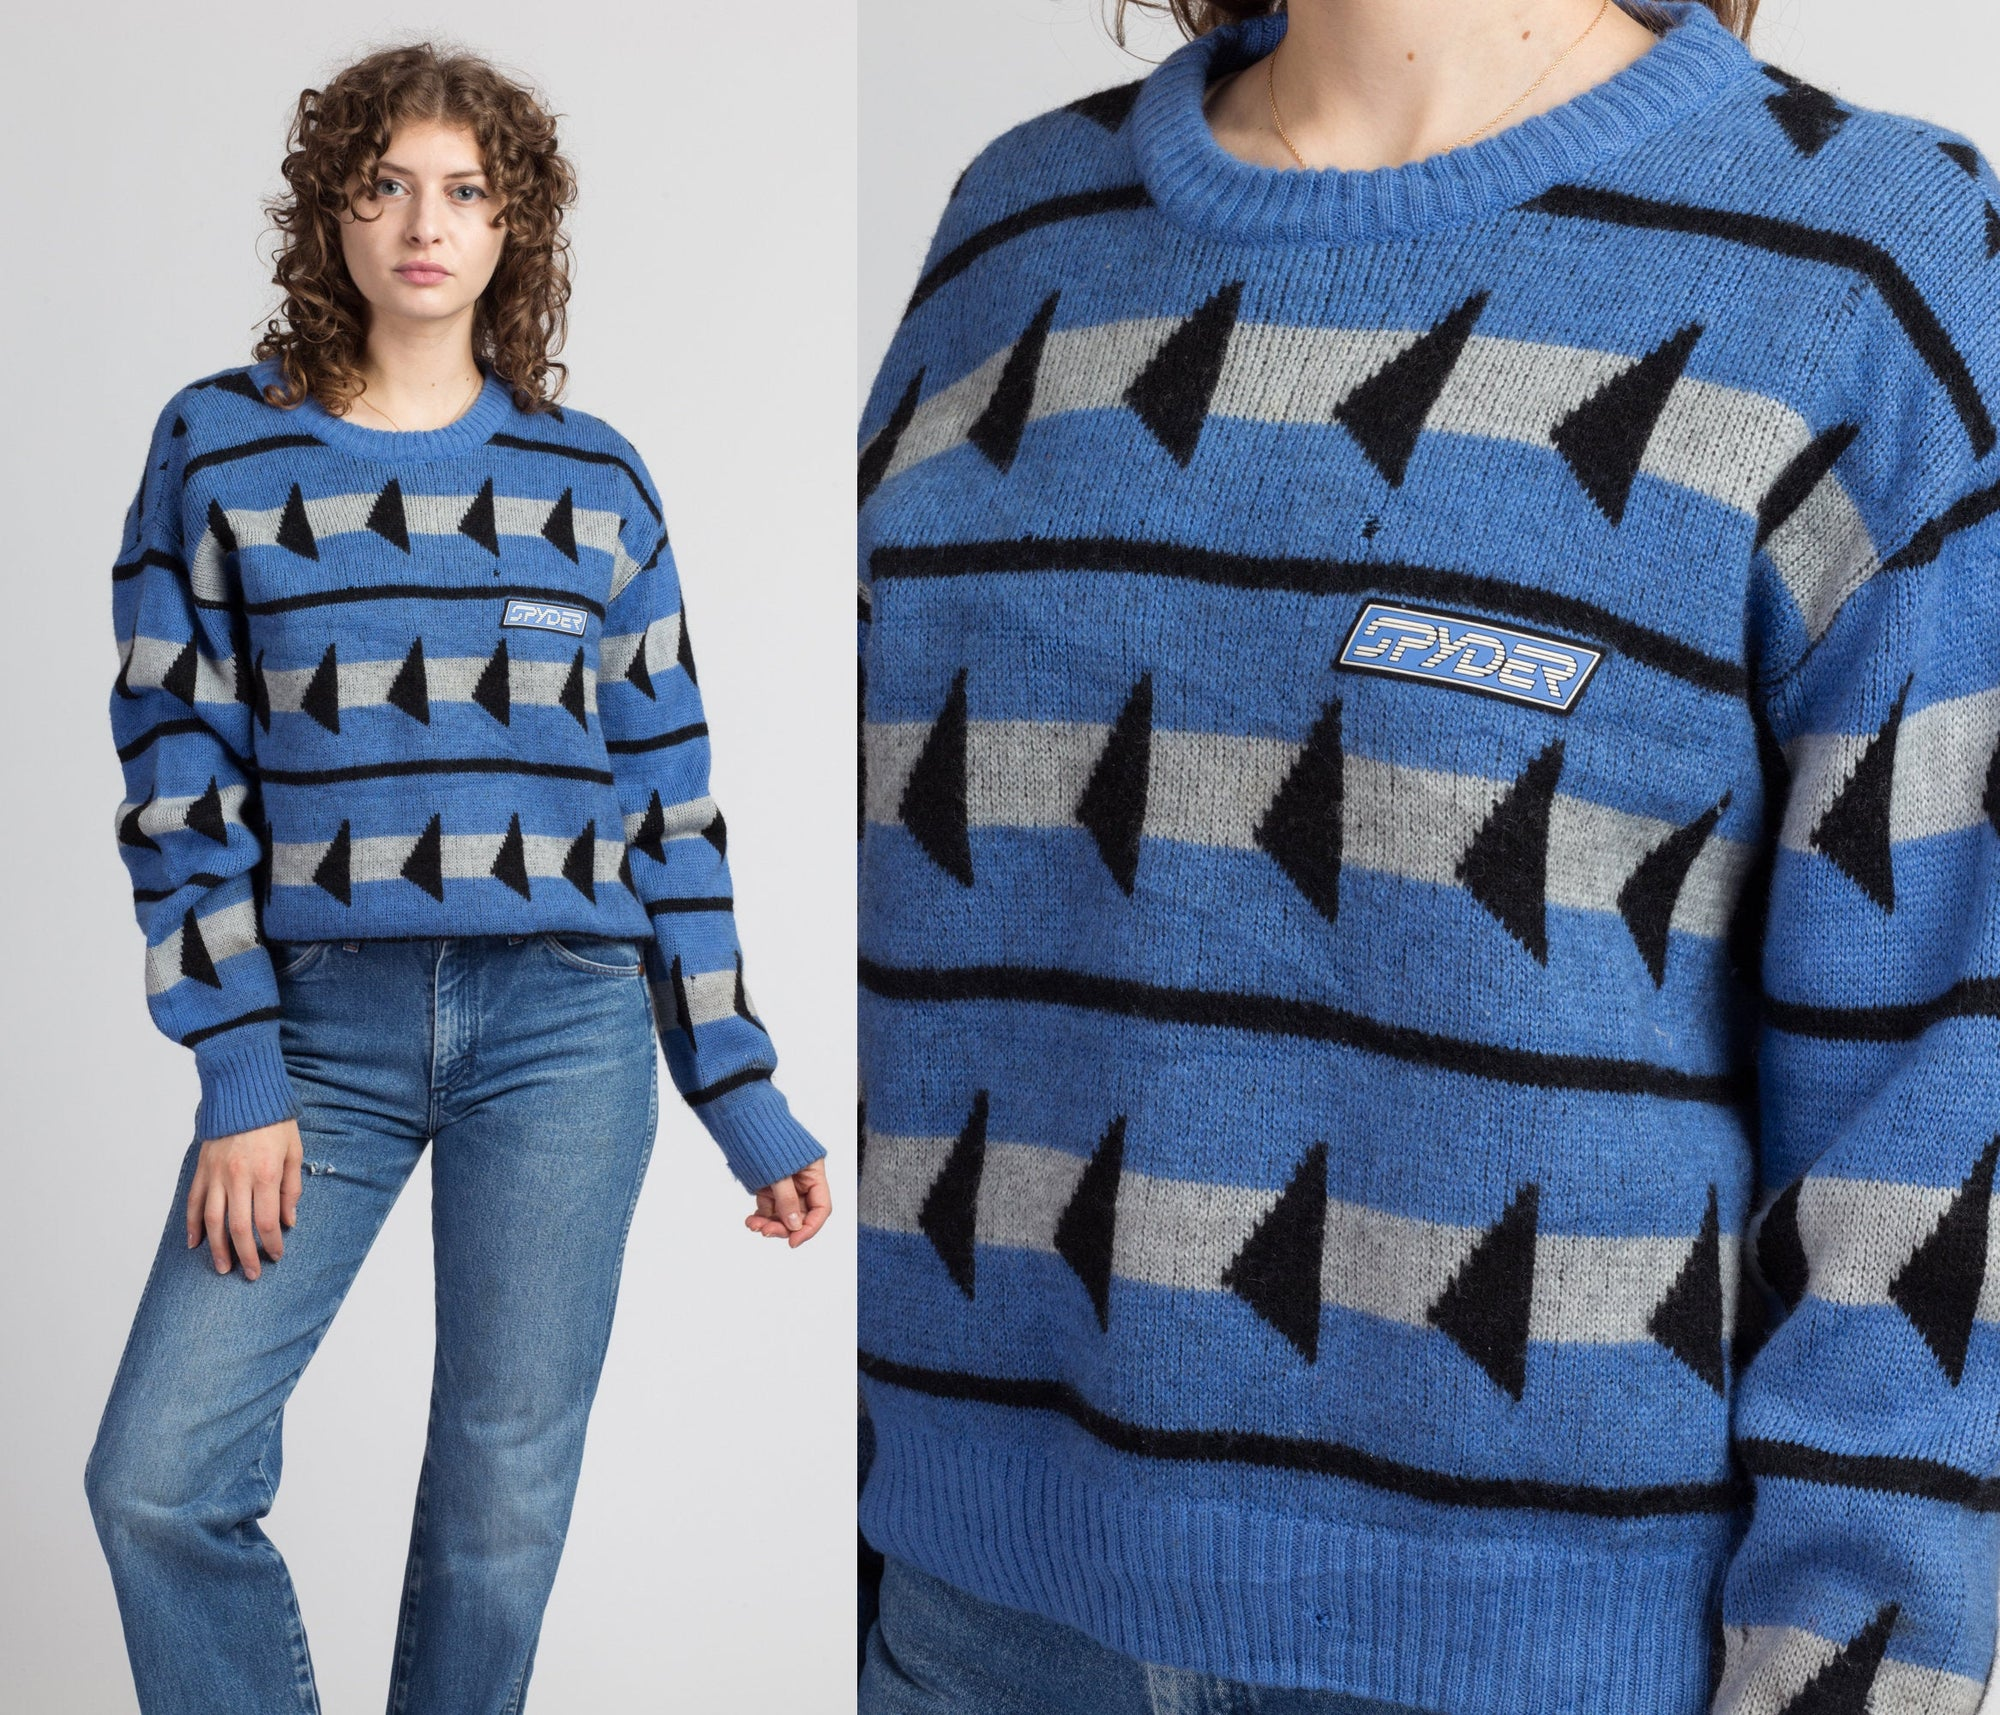 80s Spyder Geometric Knit Ski Sweater - Large